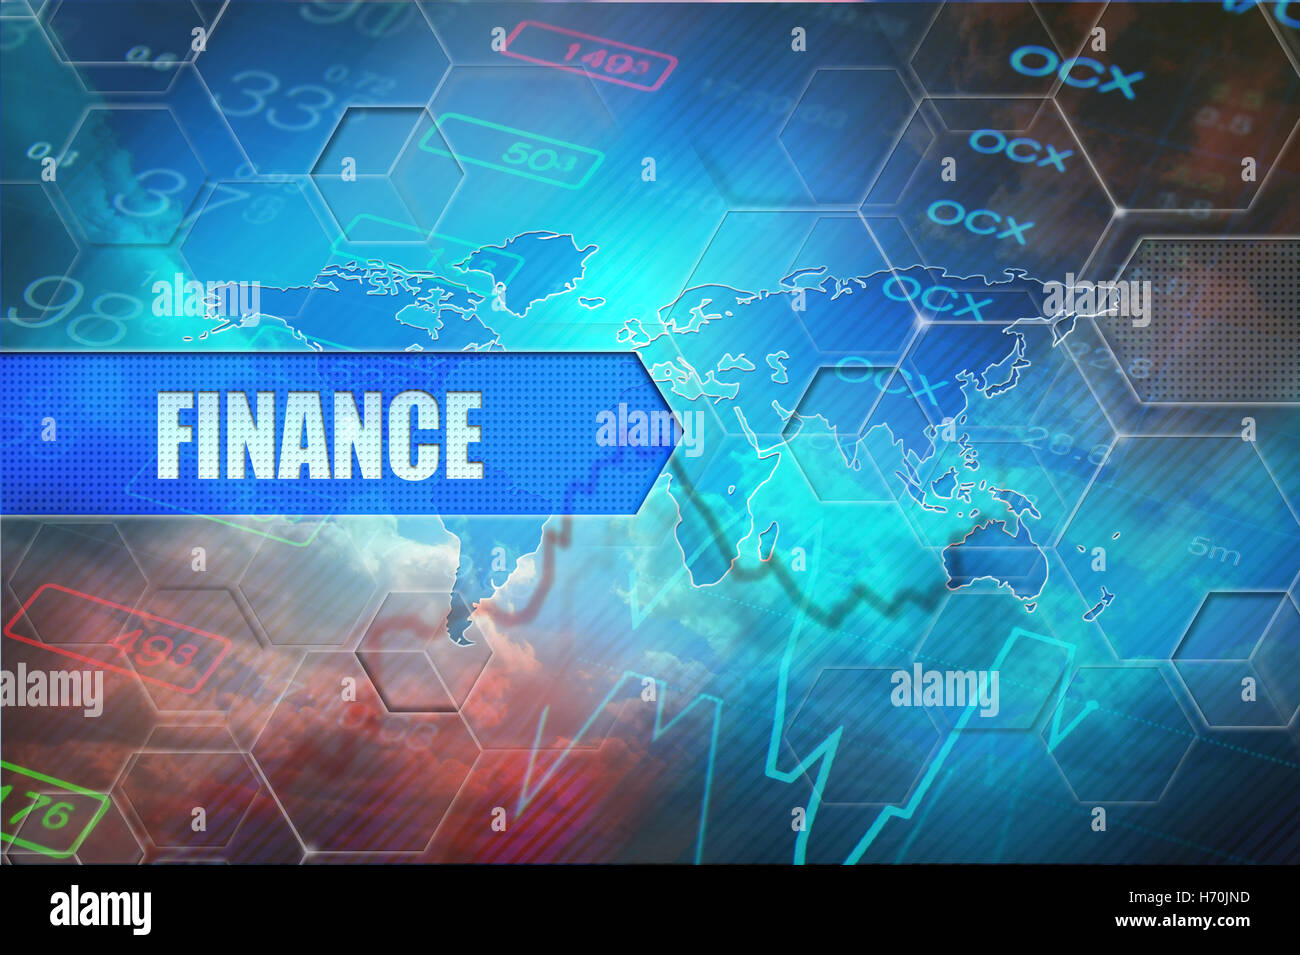 Global Finance Concept Wallpaper For Financial, Global